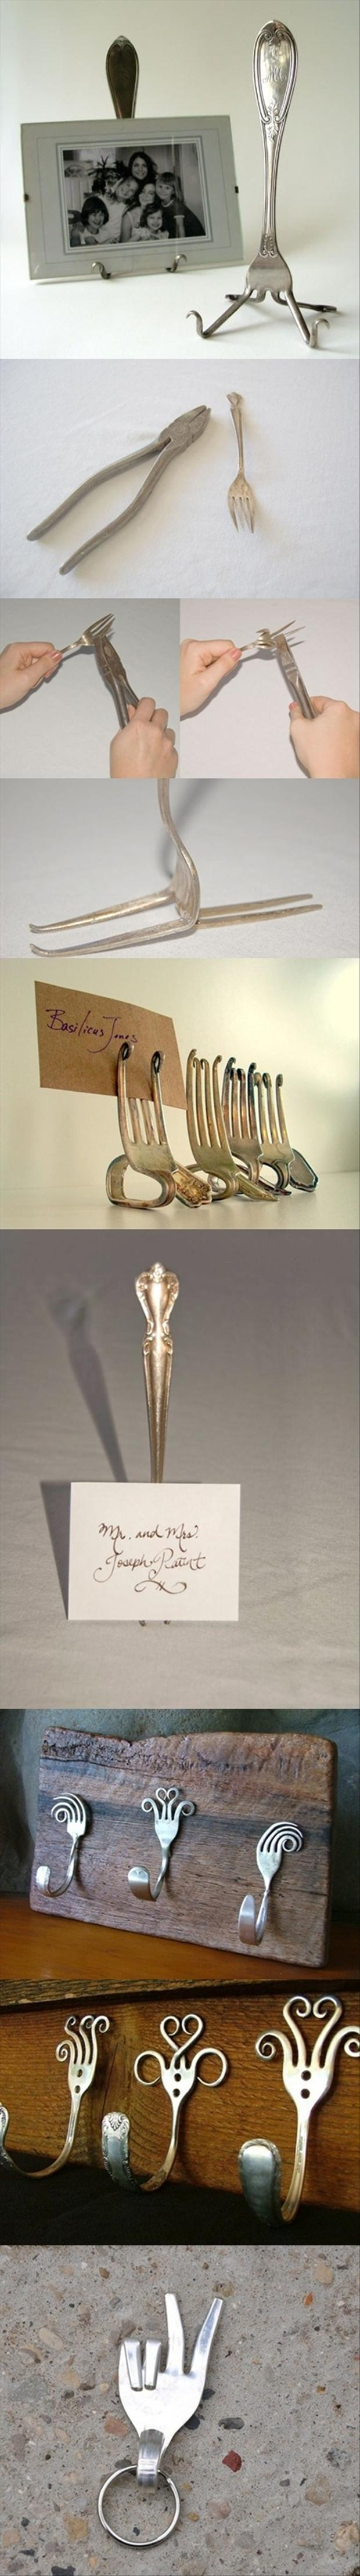 recycle old forks